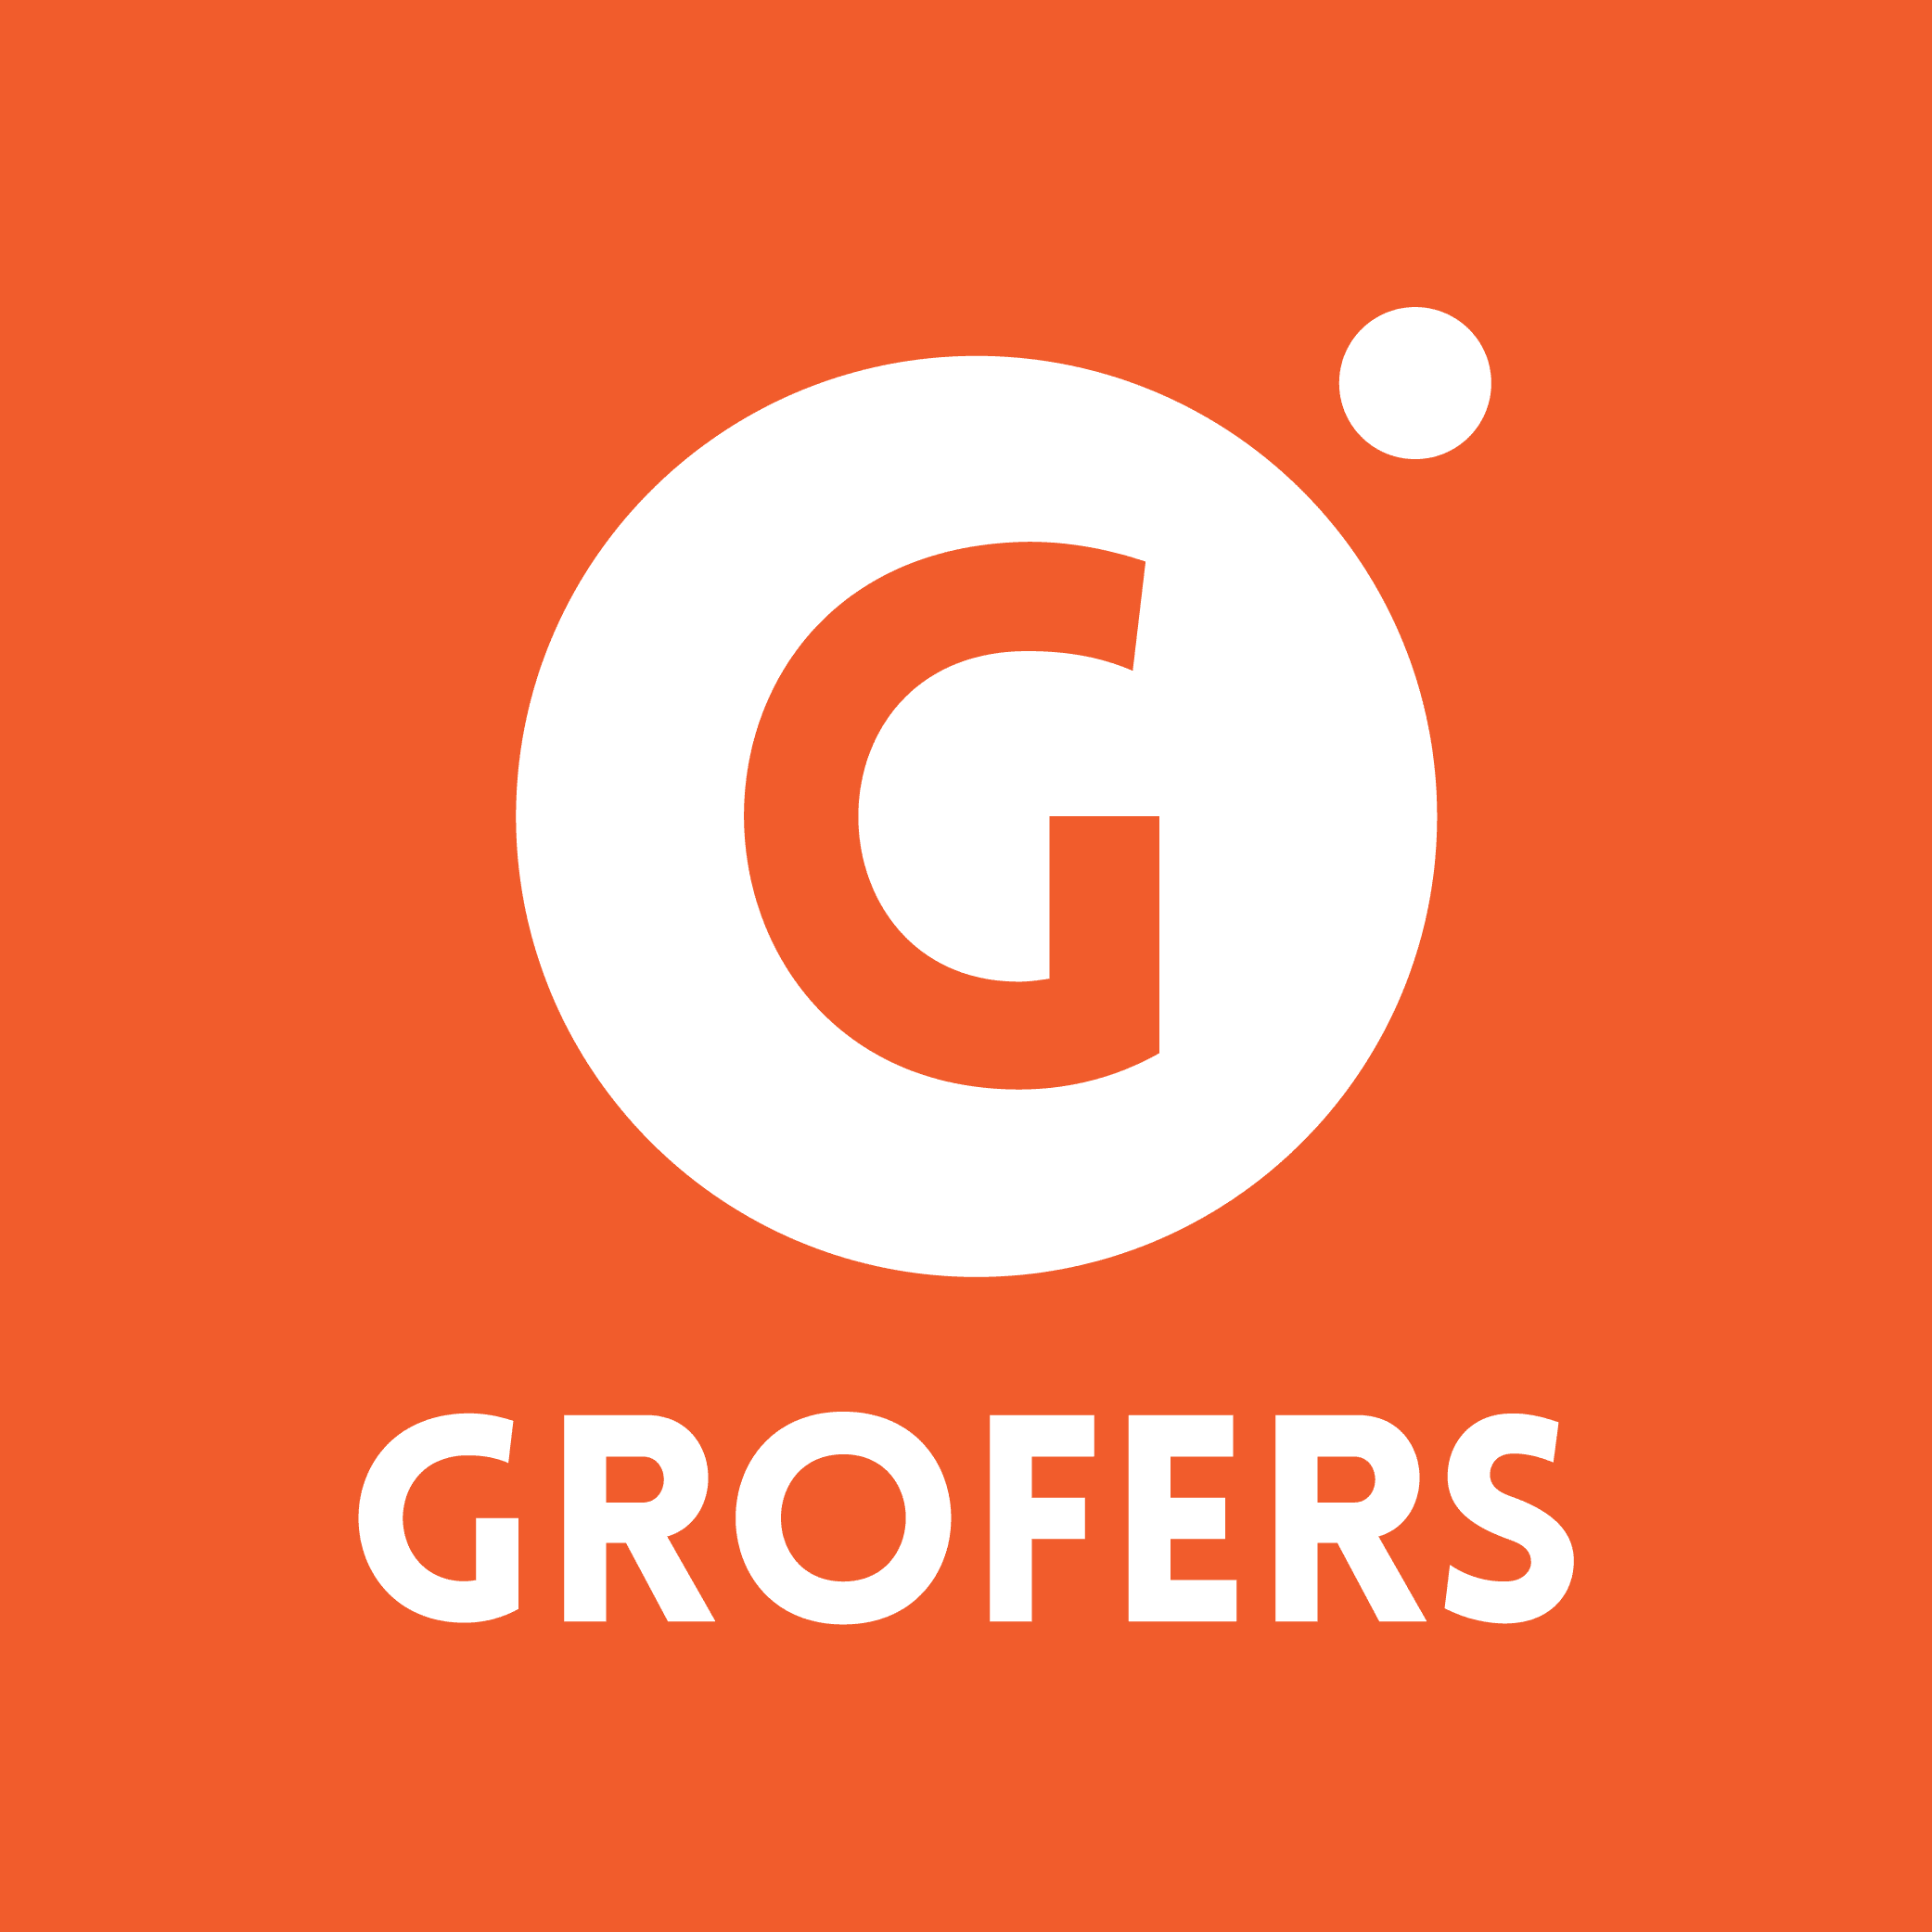 Grofers Rs. 250 off on Rs. 1500 with RBL Bank Credit Cards on Monday and Friday only